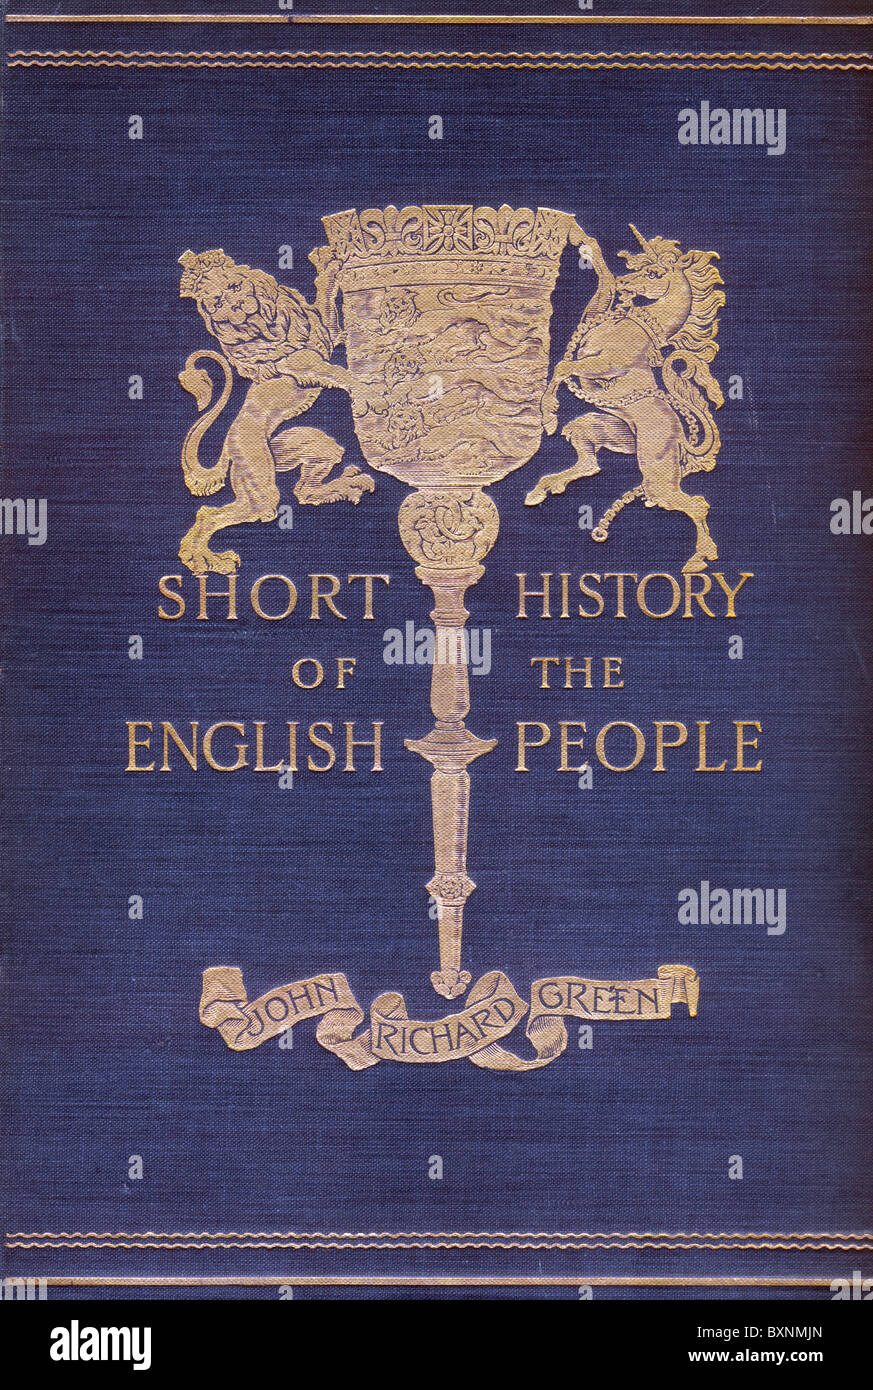 Front Cover of Short History of the English People by John Richard Green, first published in four volumes in 1892 - Stock Image